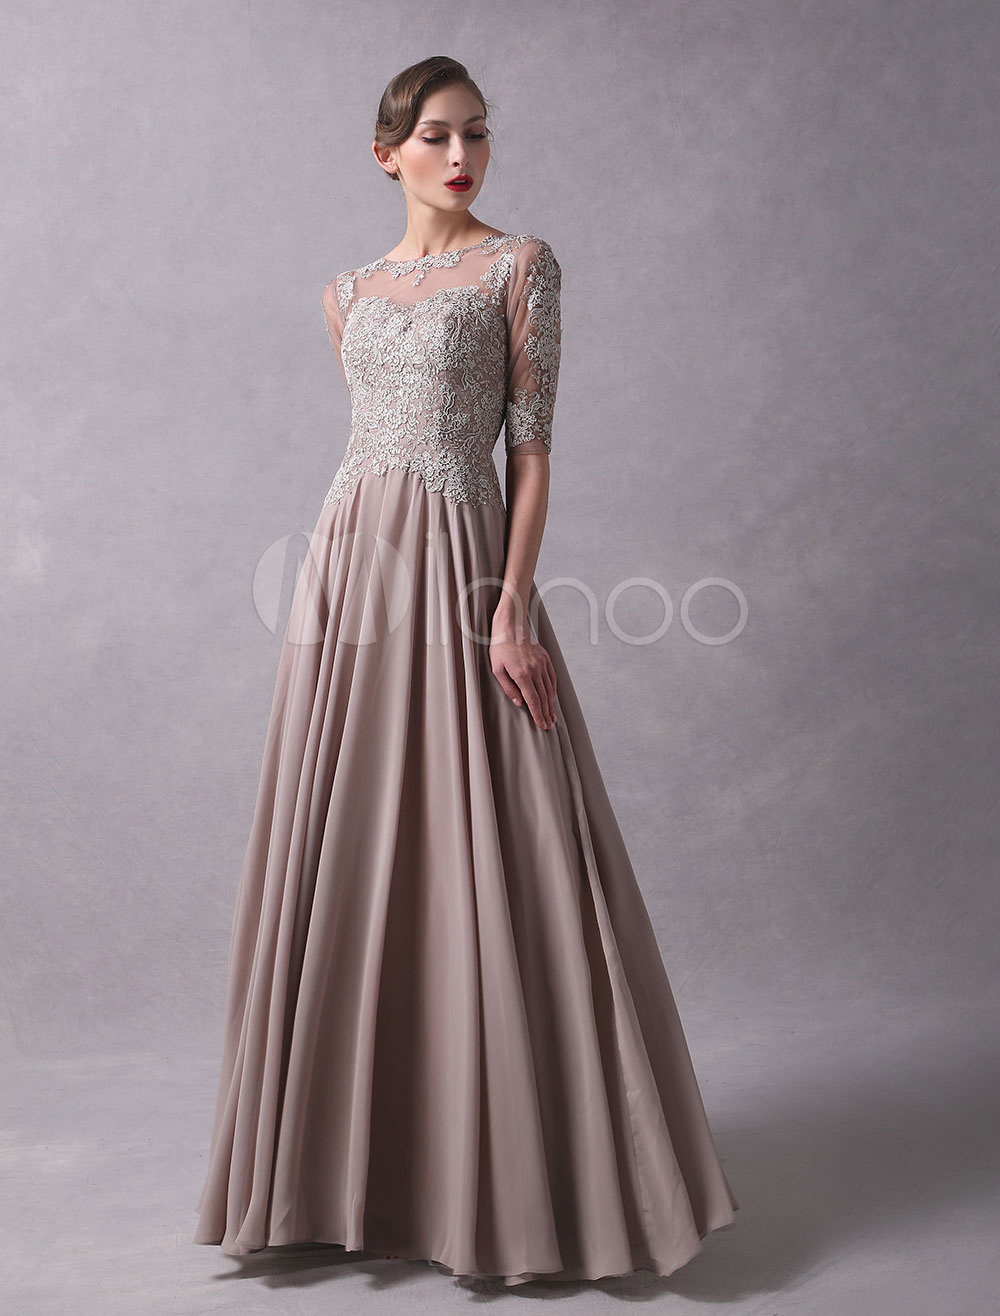 Wedding Guest Dresses Lace Applique Chiffon Mother Of The Bride Dress Half Sleeve Illusion Floor Length Wedding Party Dresses